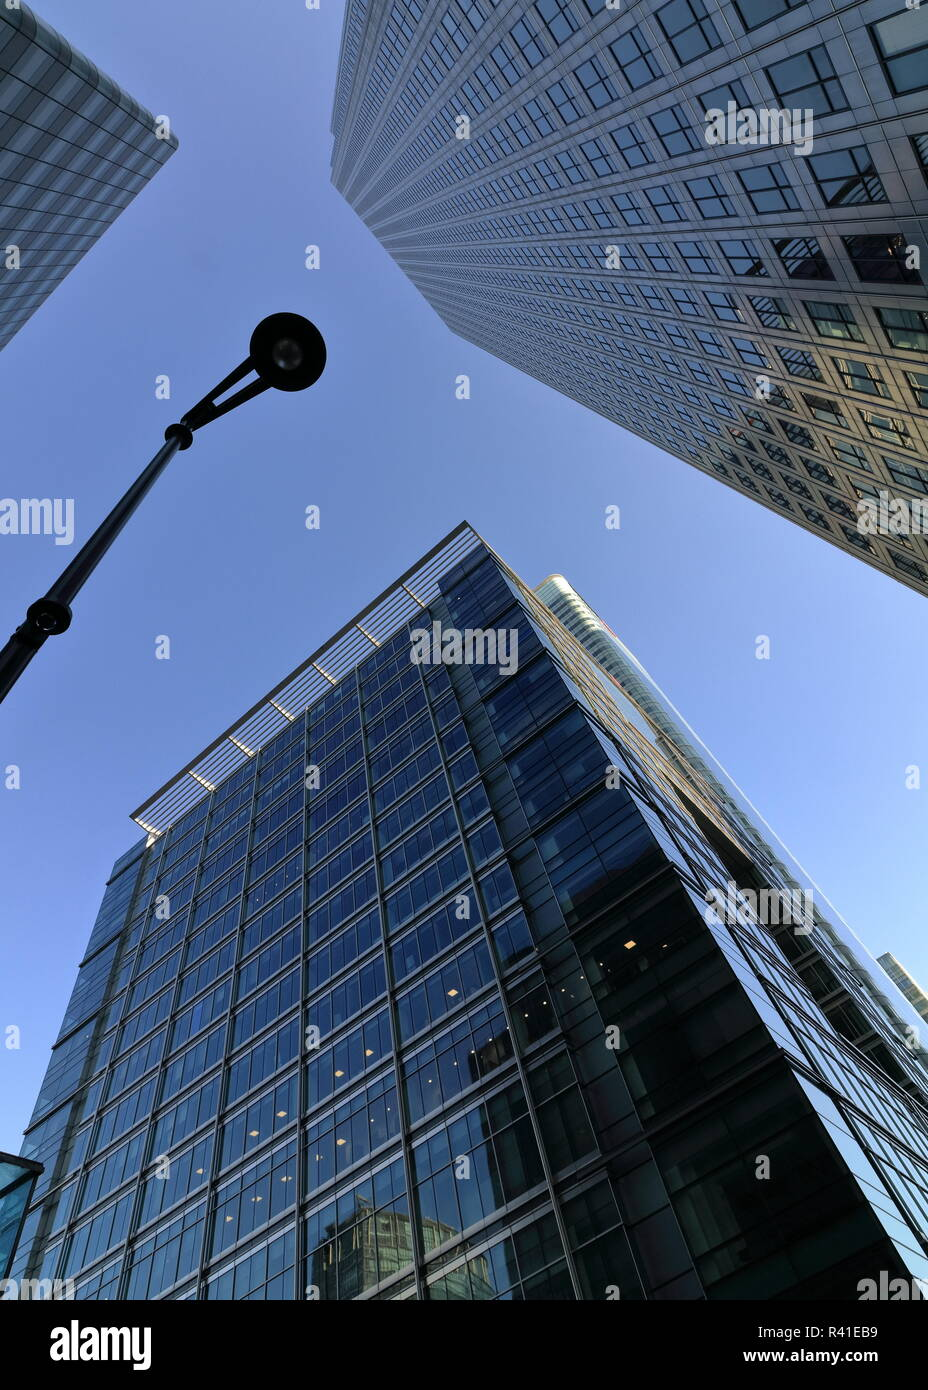 Looking up to the sky with tall skyscrapers around at Canary Wharf area in London.  Canada Square HSBS global asset. Business centre.  Sky reflections - Stock Image